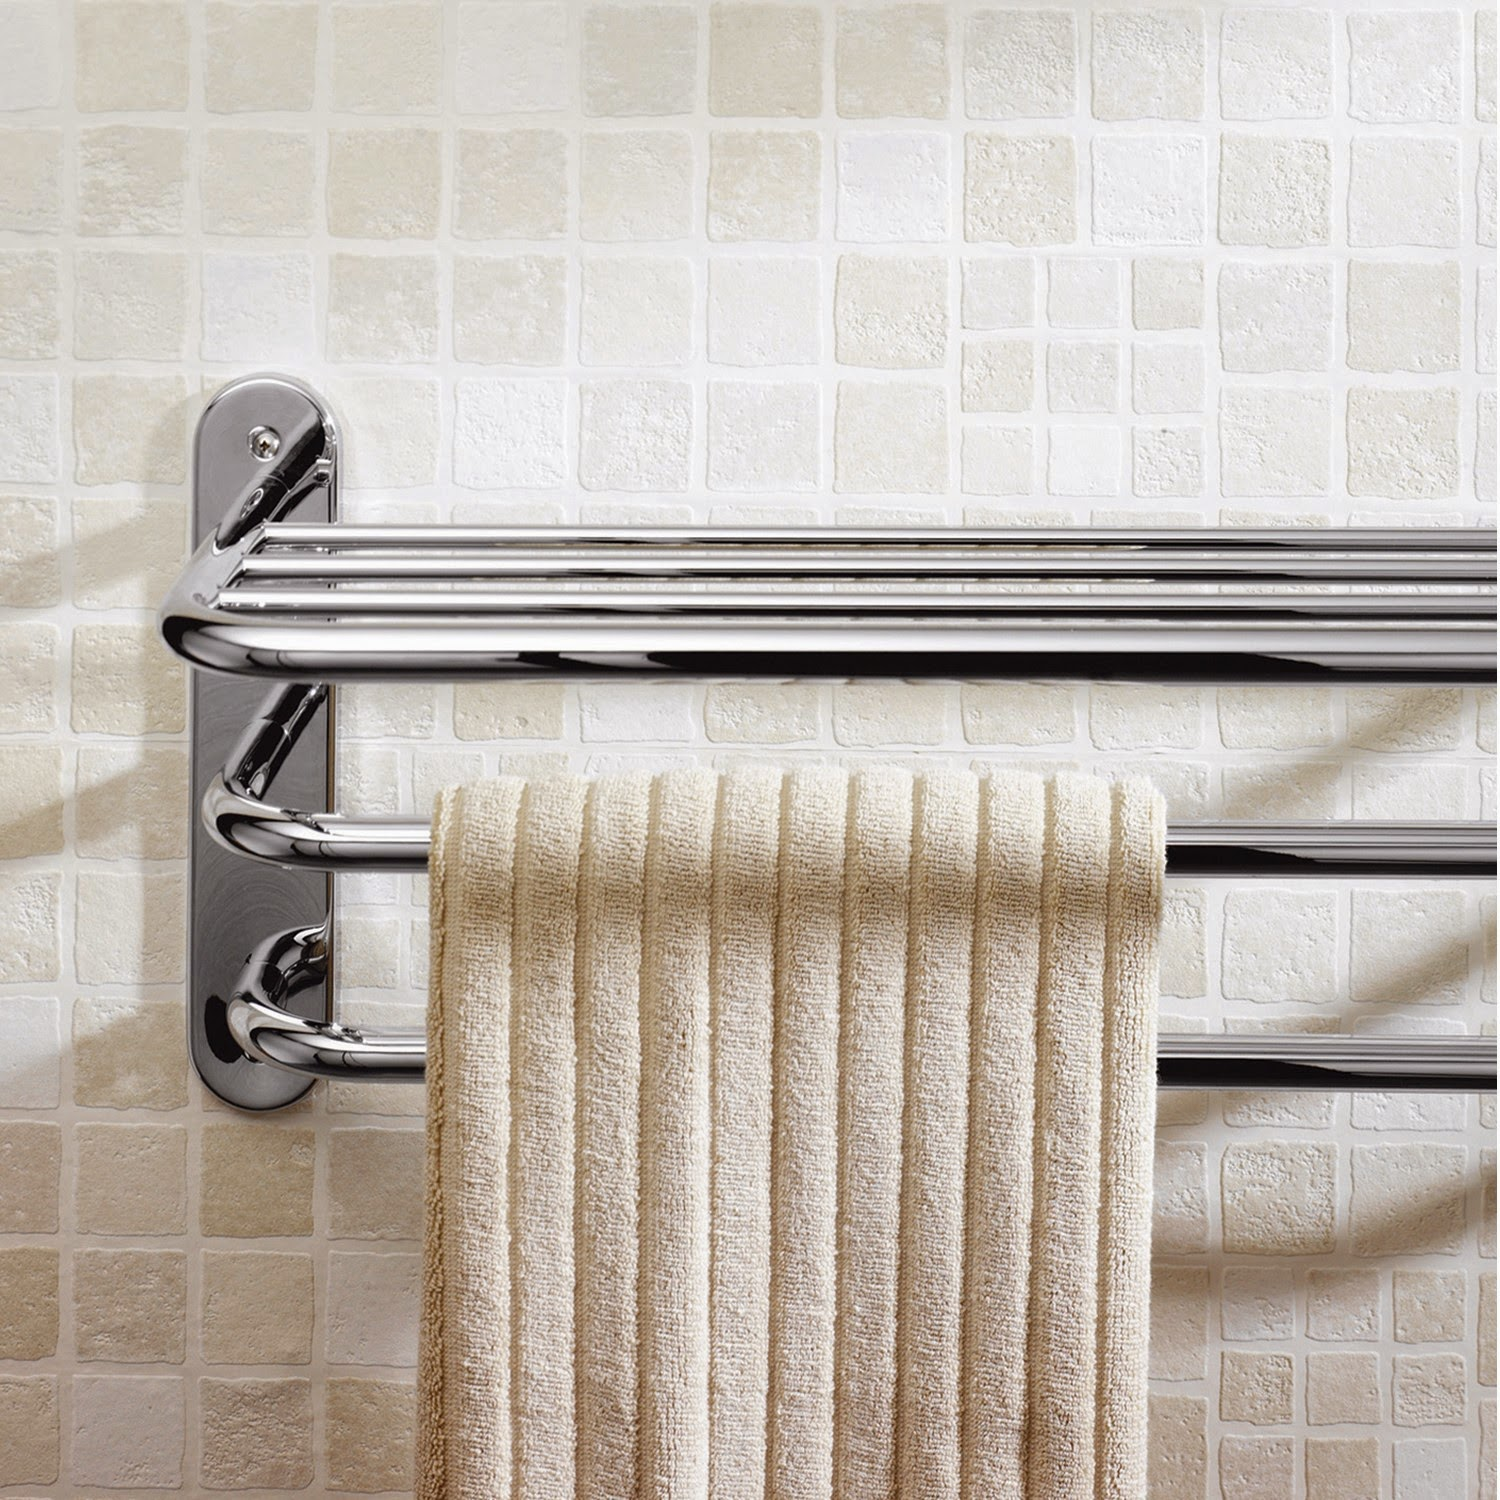 Exceptional Click The Image To Enlarge And Enjoy The Bathroom Accessories Towel Racks  Ideas.